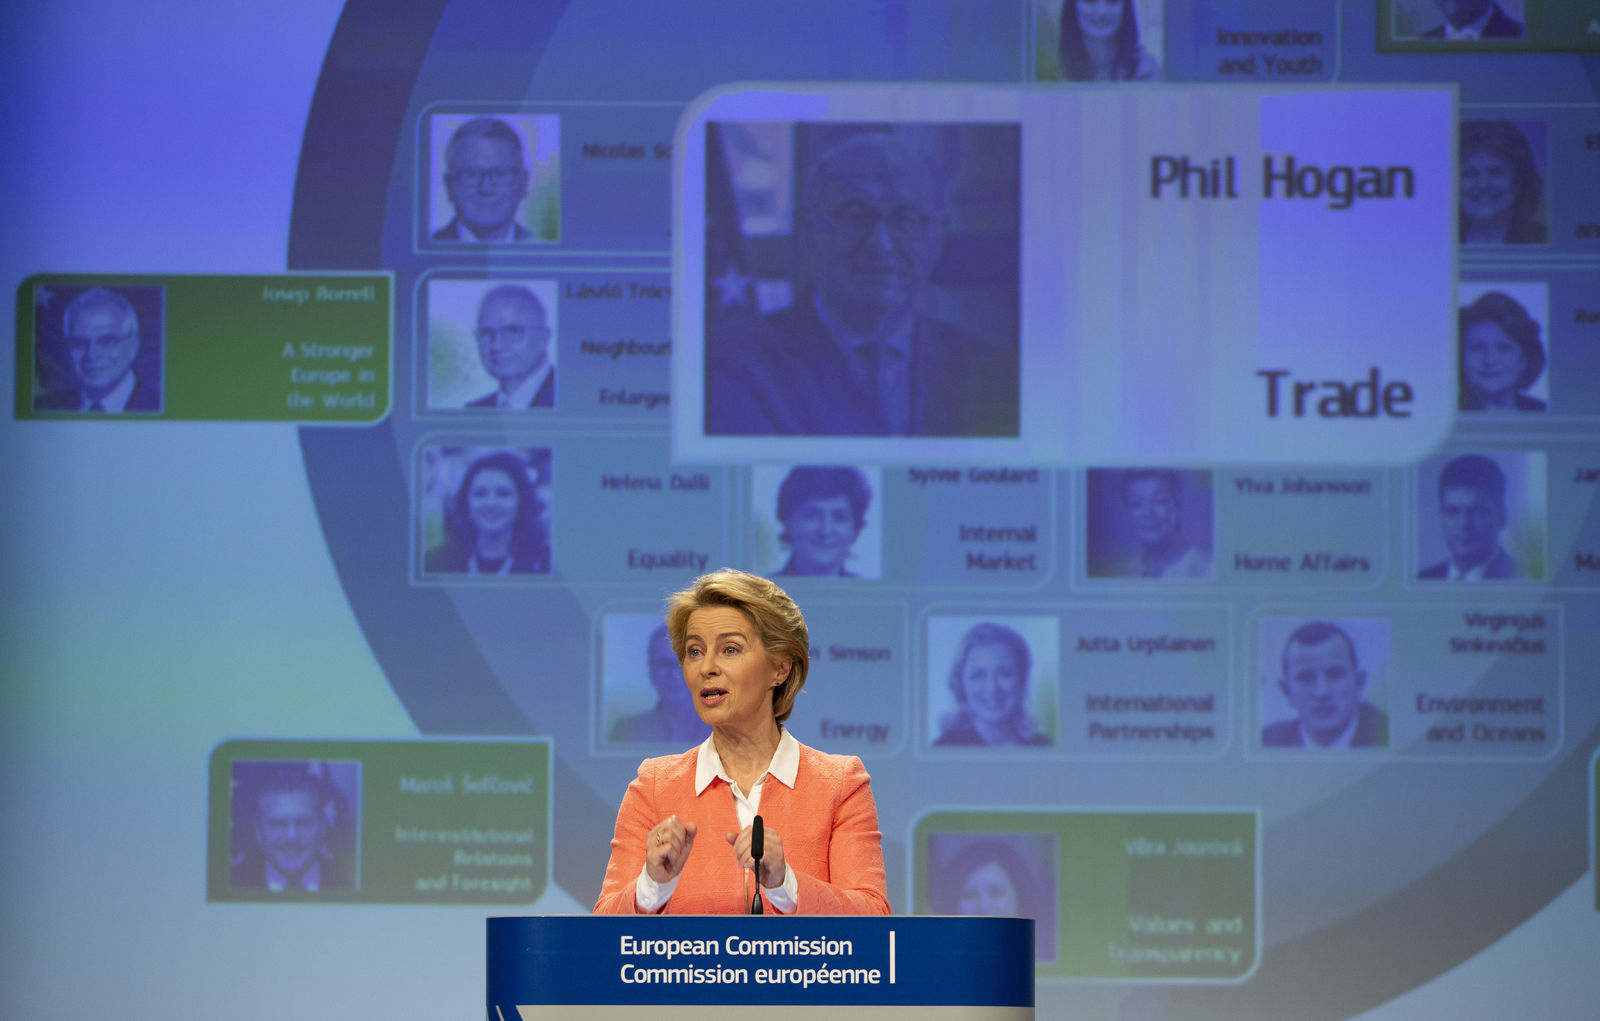 Incoming European Commission President Ursula von der Leyen announces Ireland's Phil Hogan as candidate for EU Trade Commissioner during a media conference at EU headquarters in Brussels, Tuesday, Sept. 10, 2019. (AP Photo/Virginia Mayo)